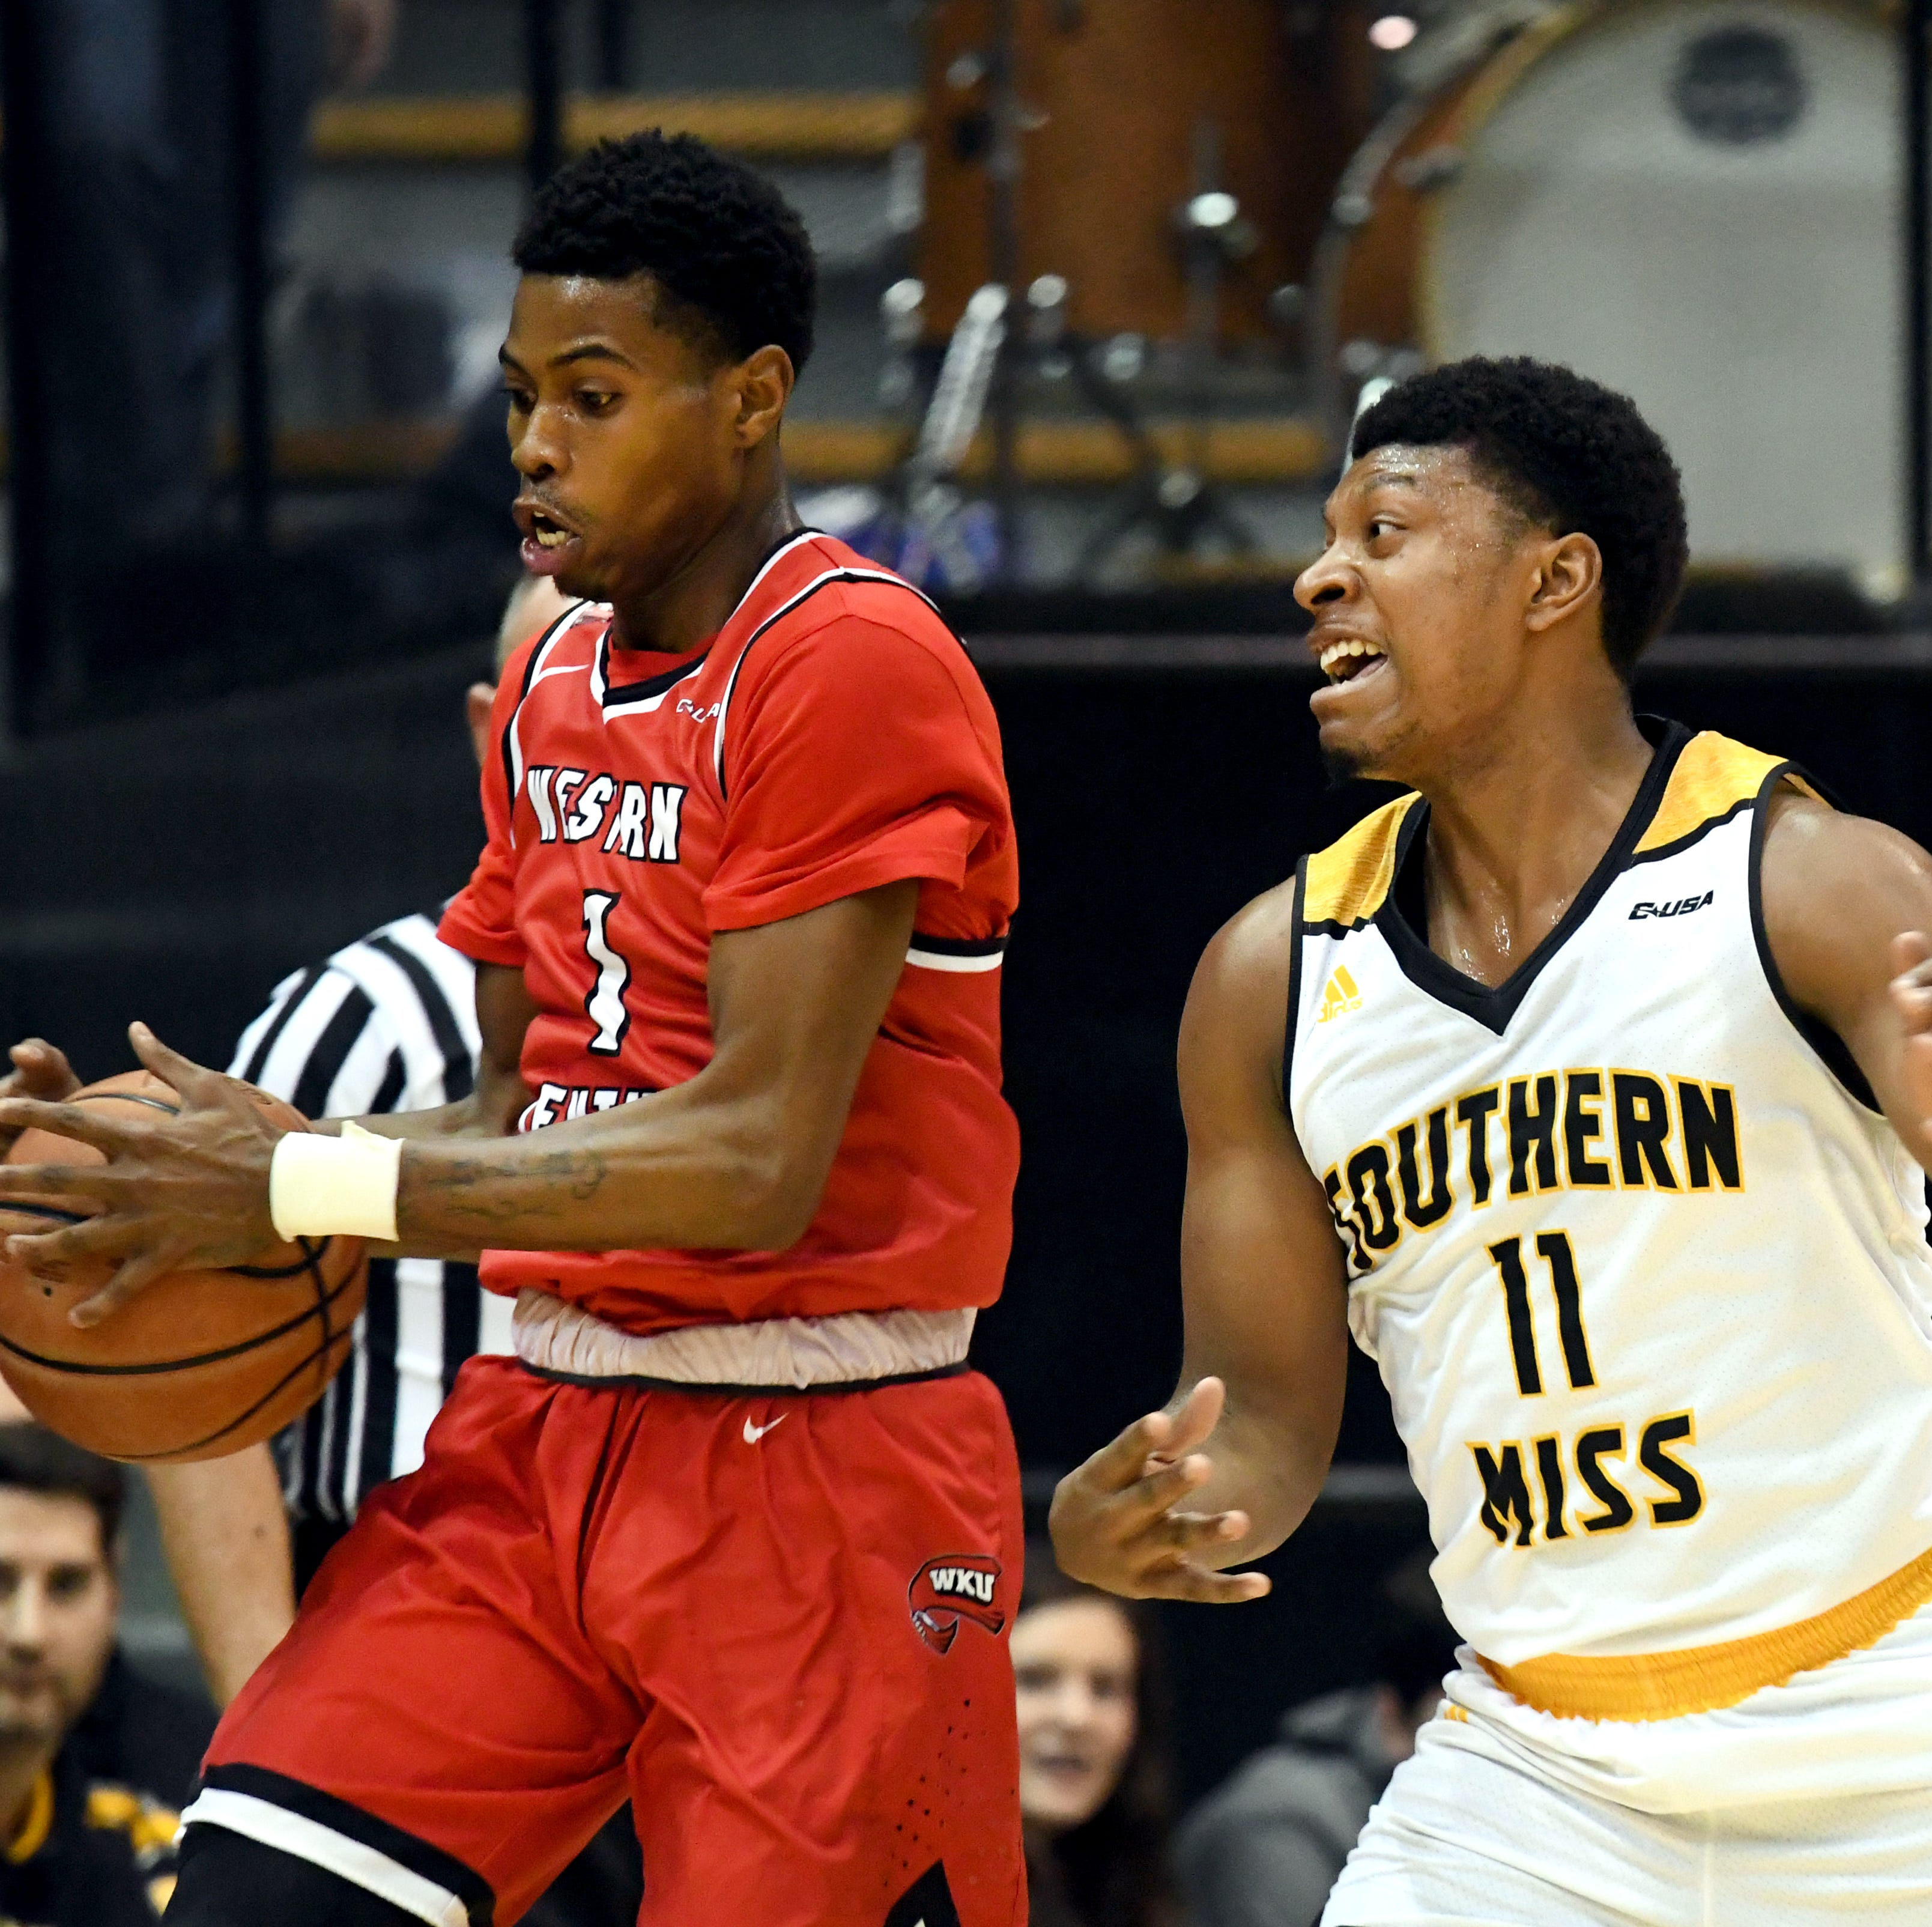 CUSA Basketball Tournament 2019: Southern Miss vs. WKU video highlights, score